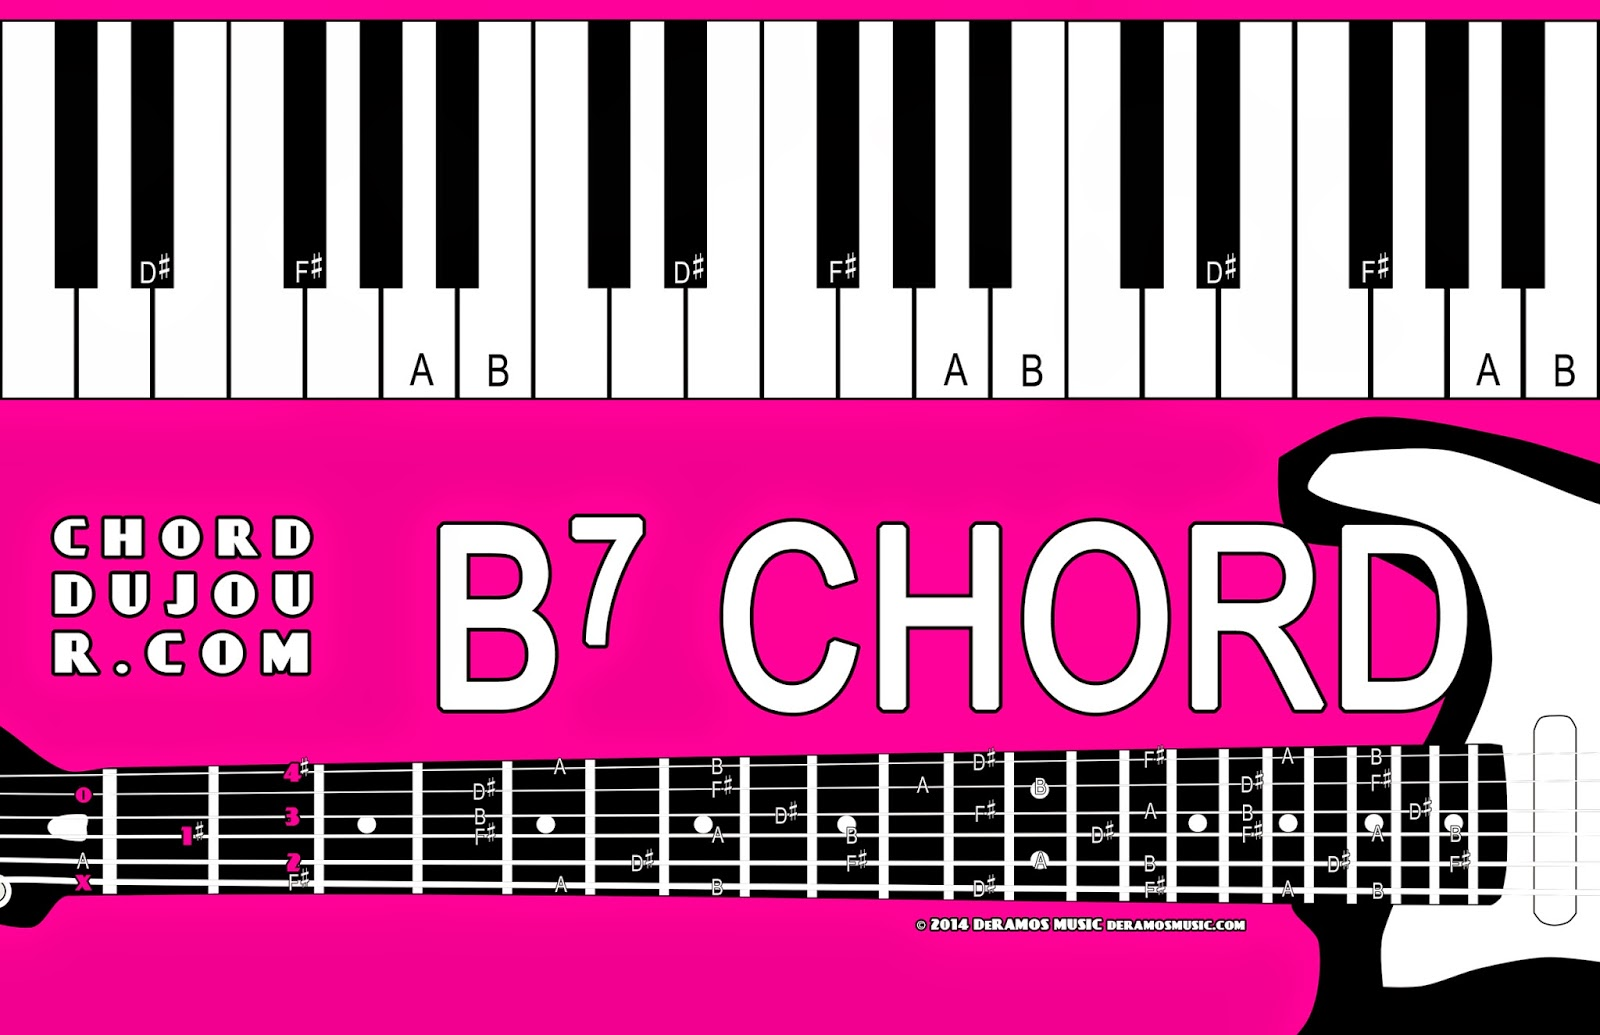 Chord du jour november 2014 chord deux jour challenge b7 and dm7b5 hexwebz Image collections